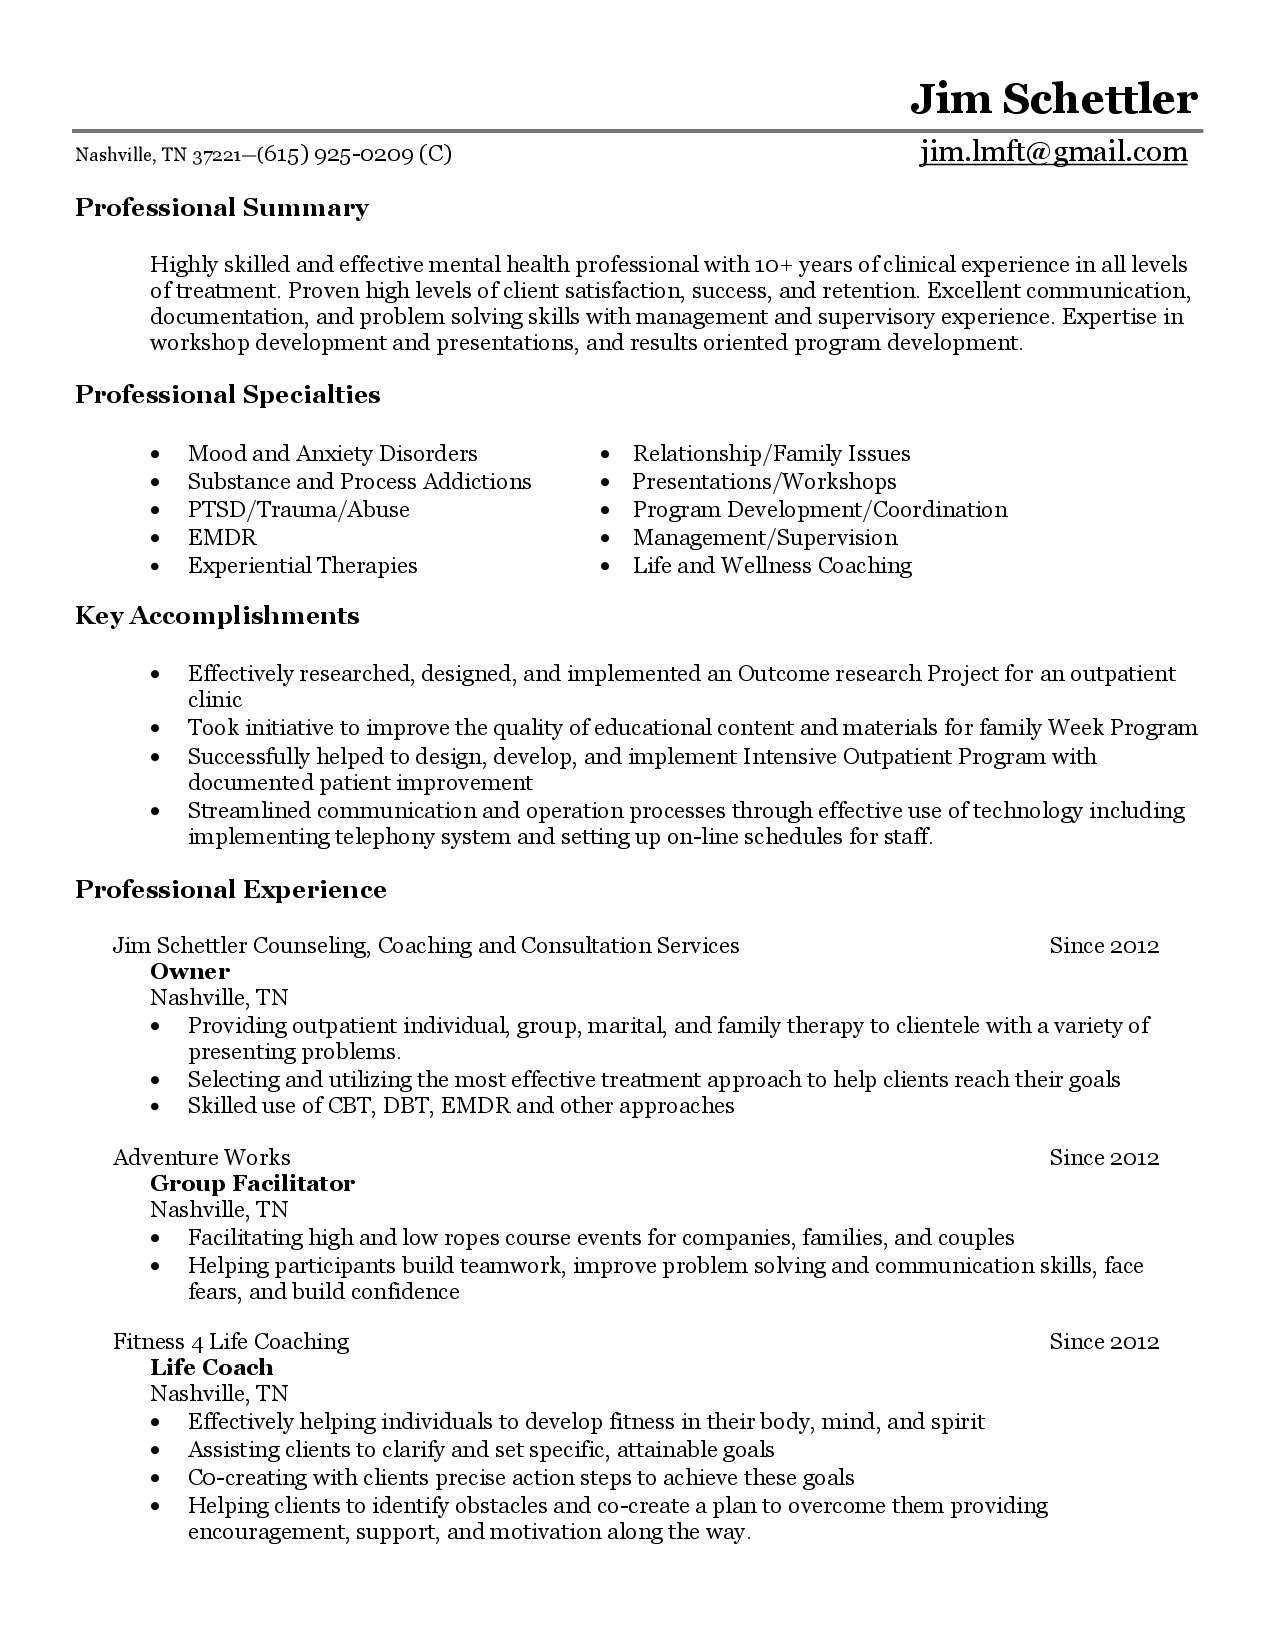 Behavioral Health Counselor Resume Sample resumes – Mental Health Counselor Job Description